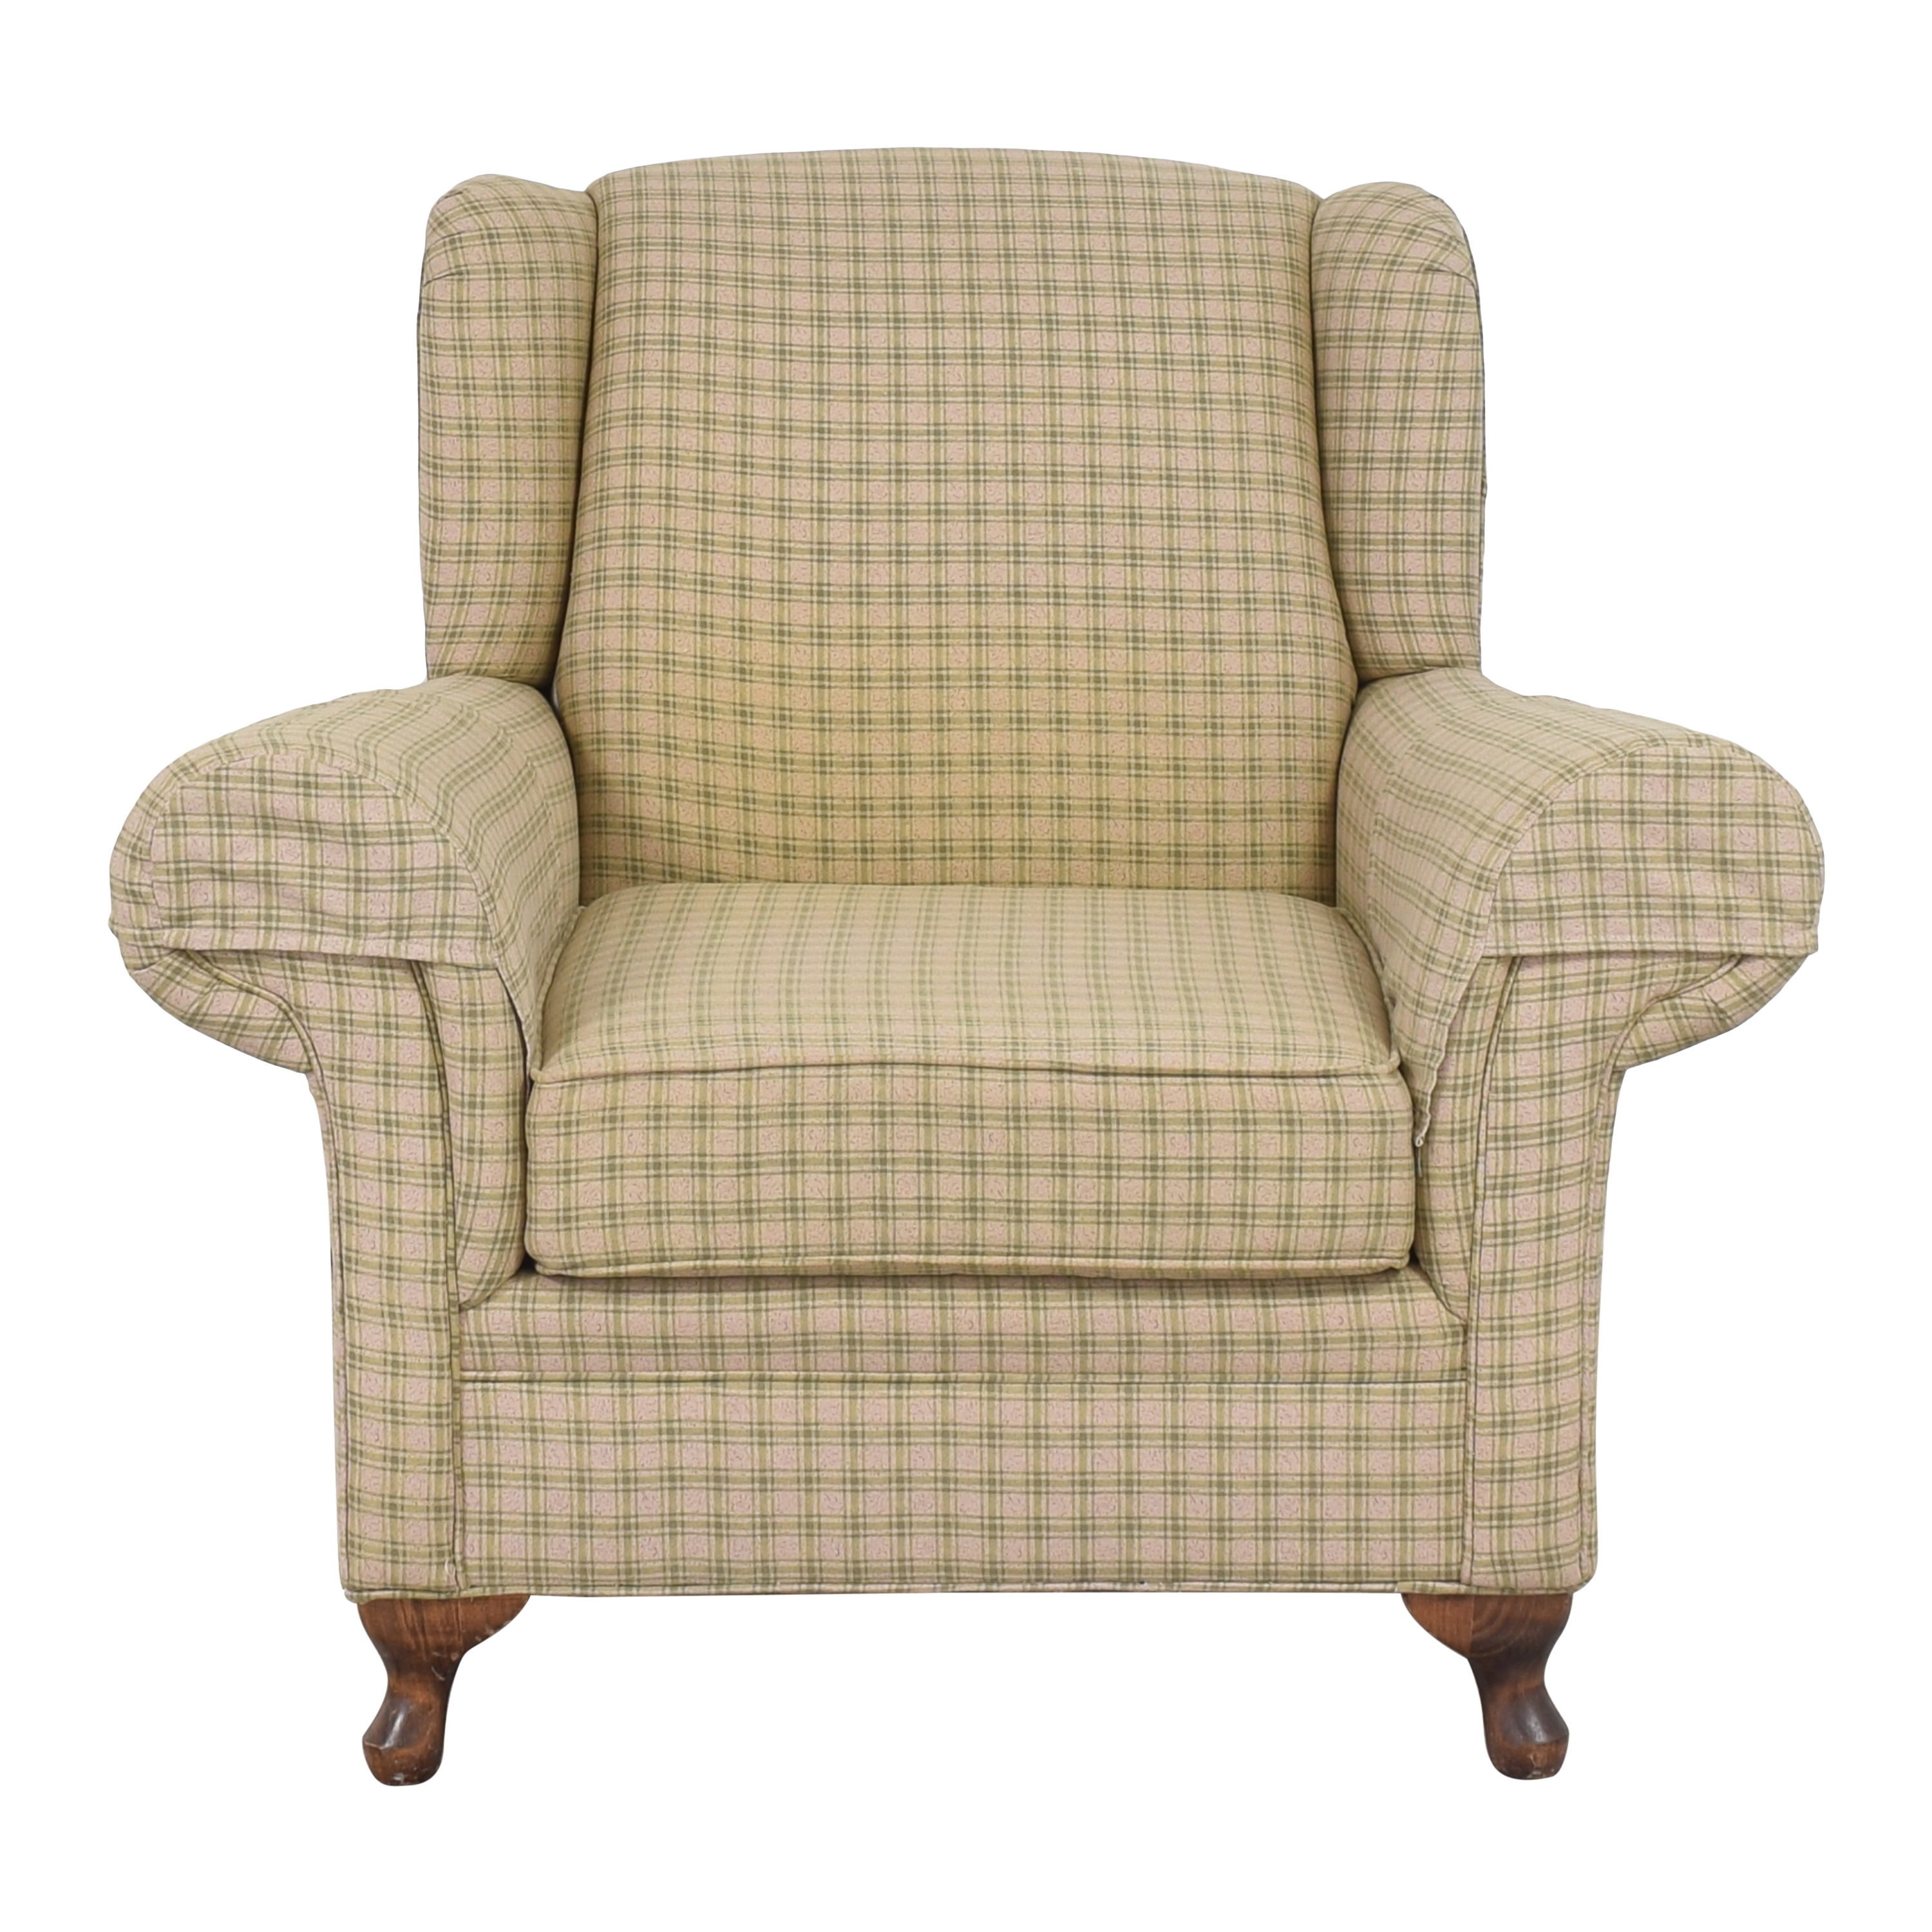 Roll Arm Chair with Ottoman sale